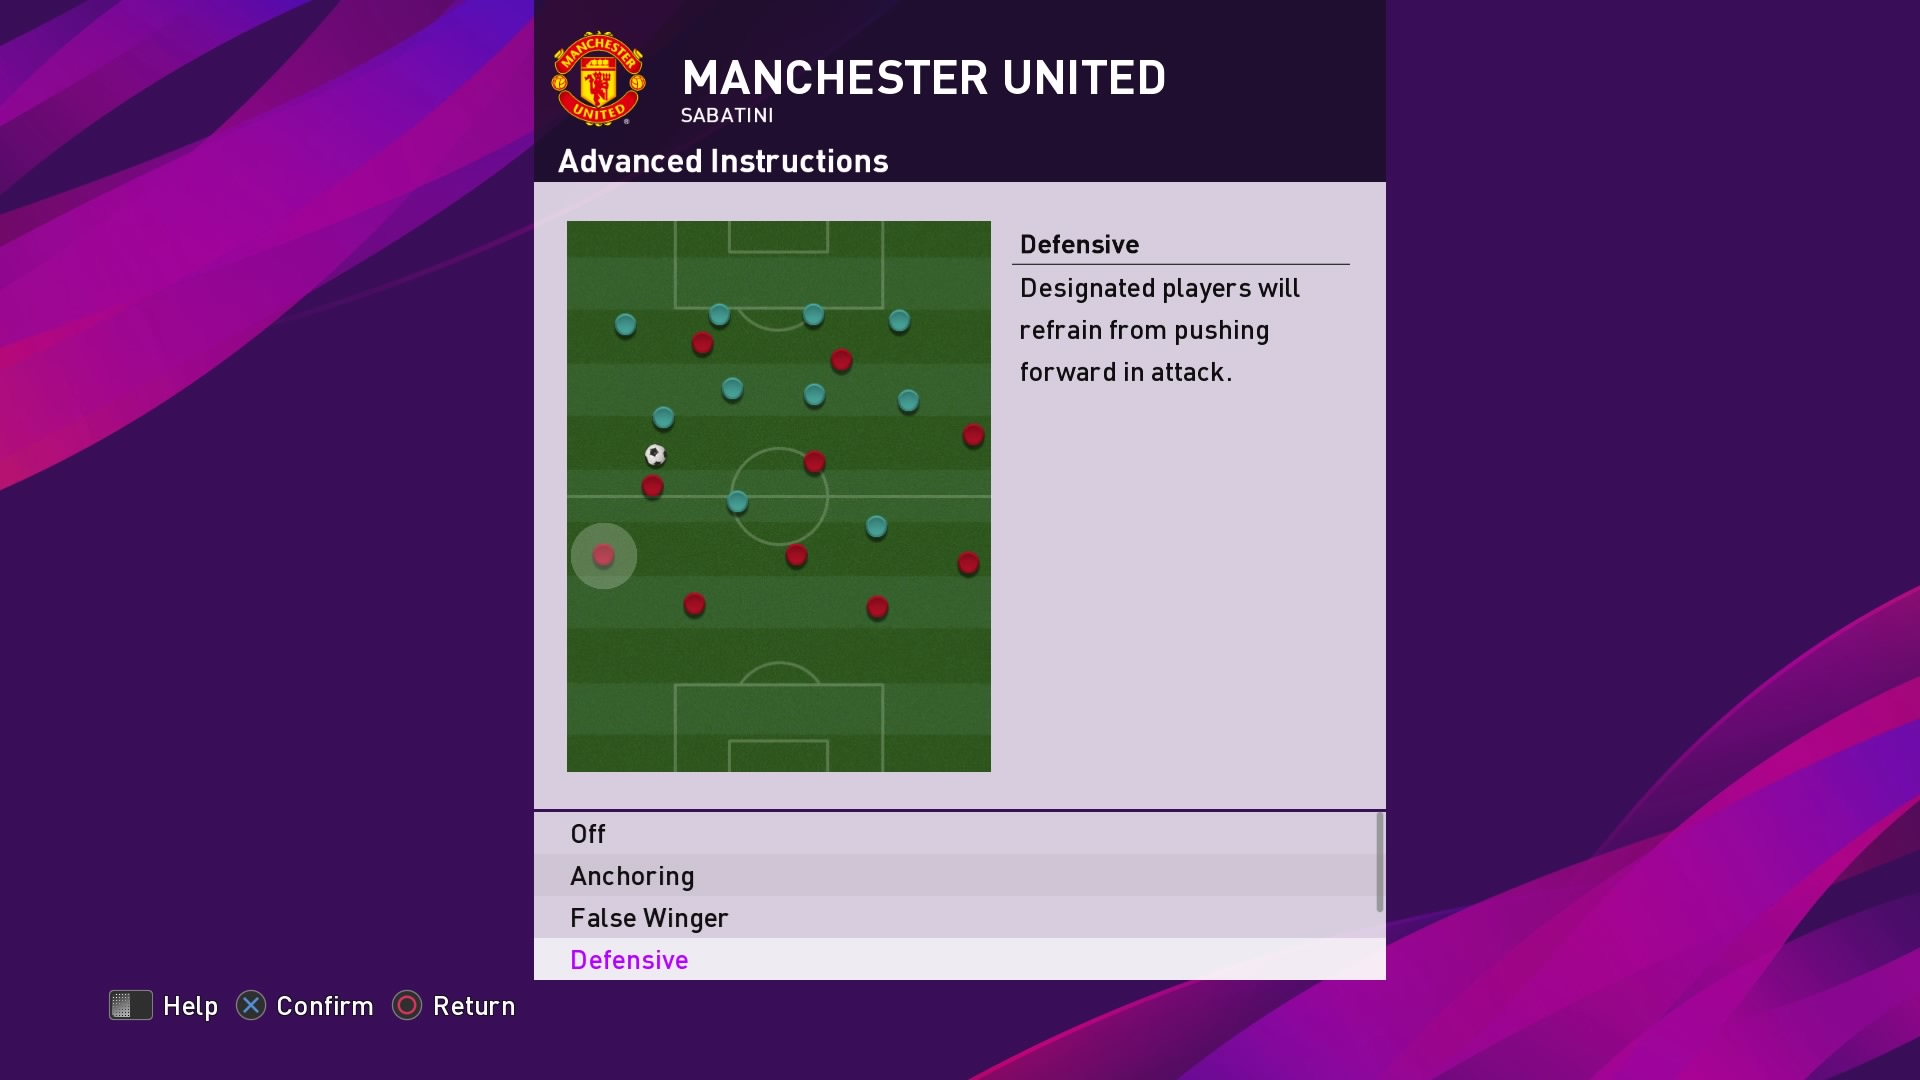 Defensive as an advanced instruction in PES